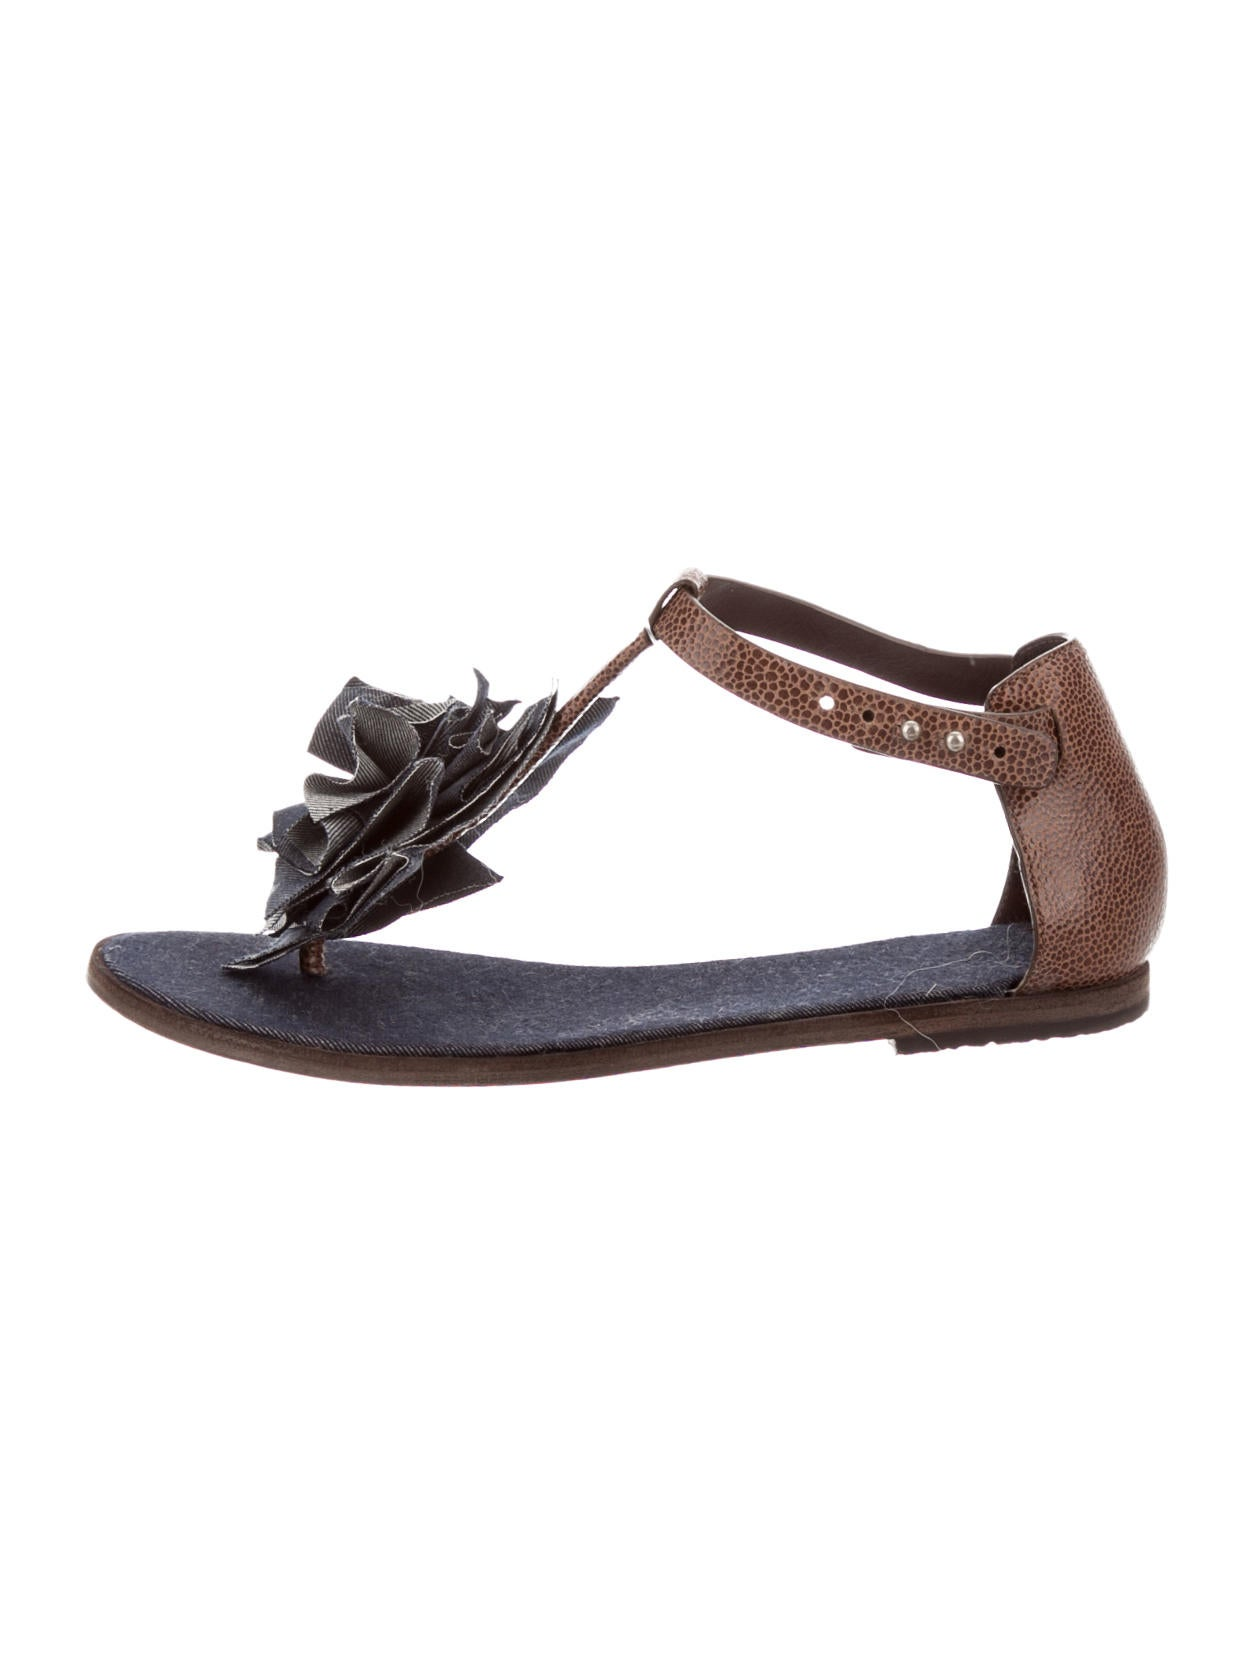 brunello cucinelli sandals shoes bru26587 the realreal